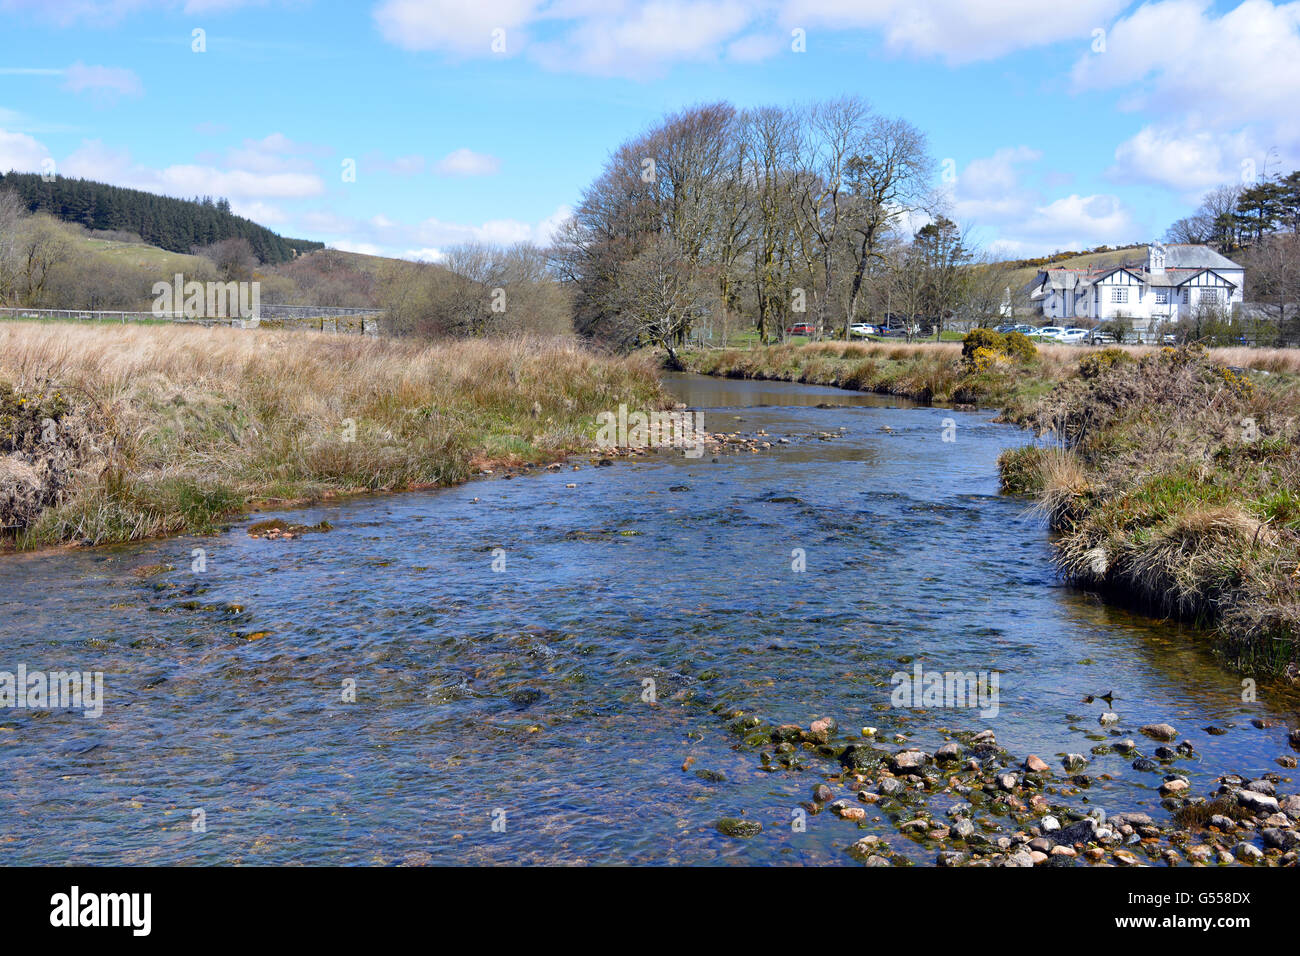 Looking towards the Two Bridges Hotel from banks of the West Dart River, Two Bridges, Dartmoor National Park, Devon. - Stock Image